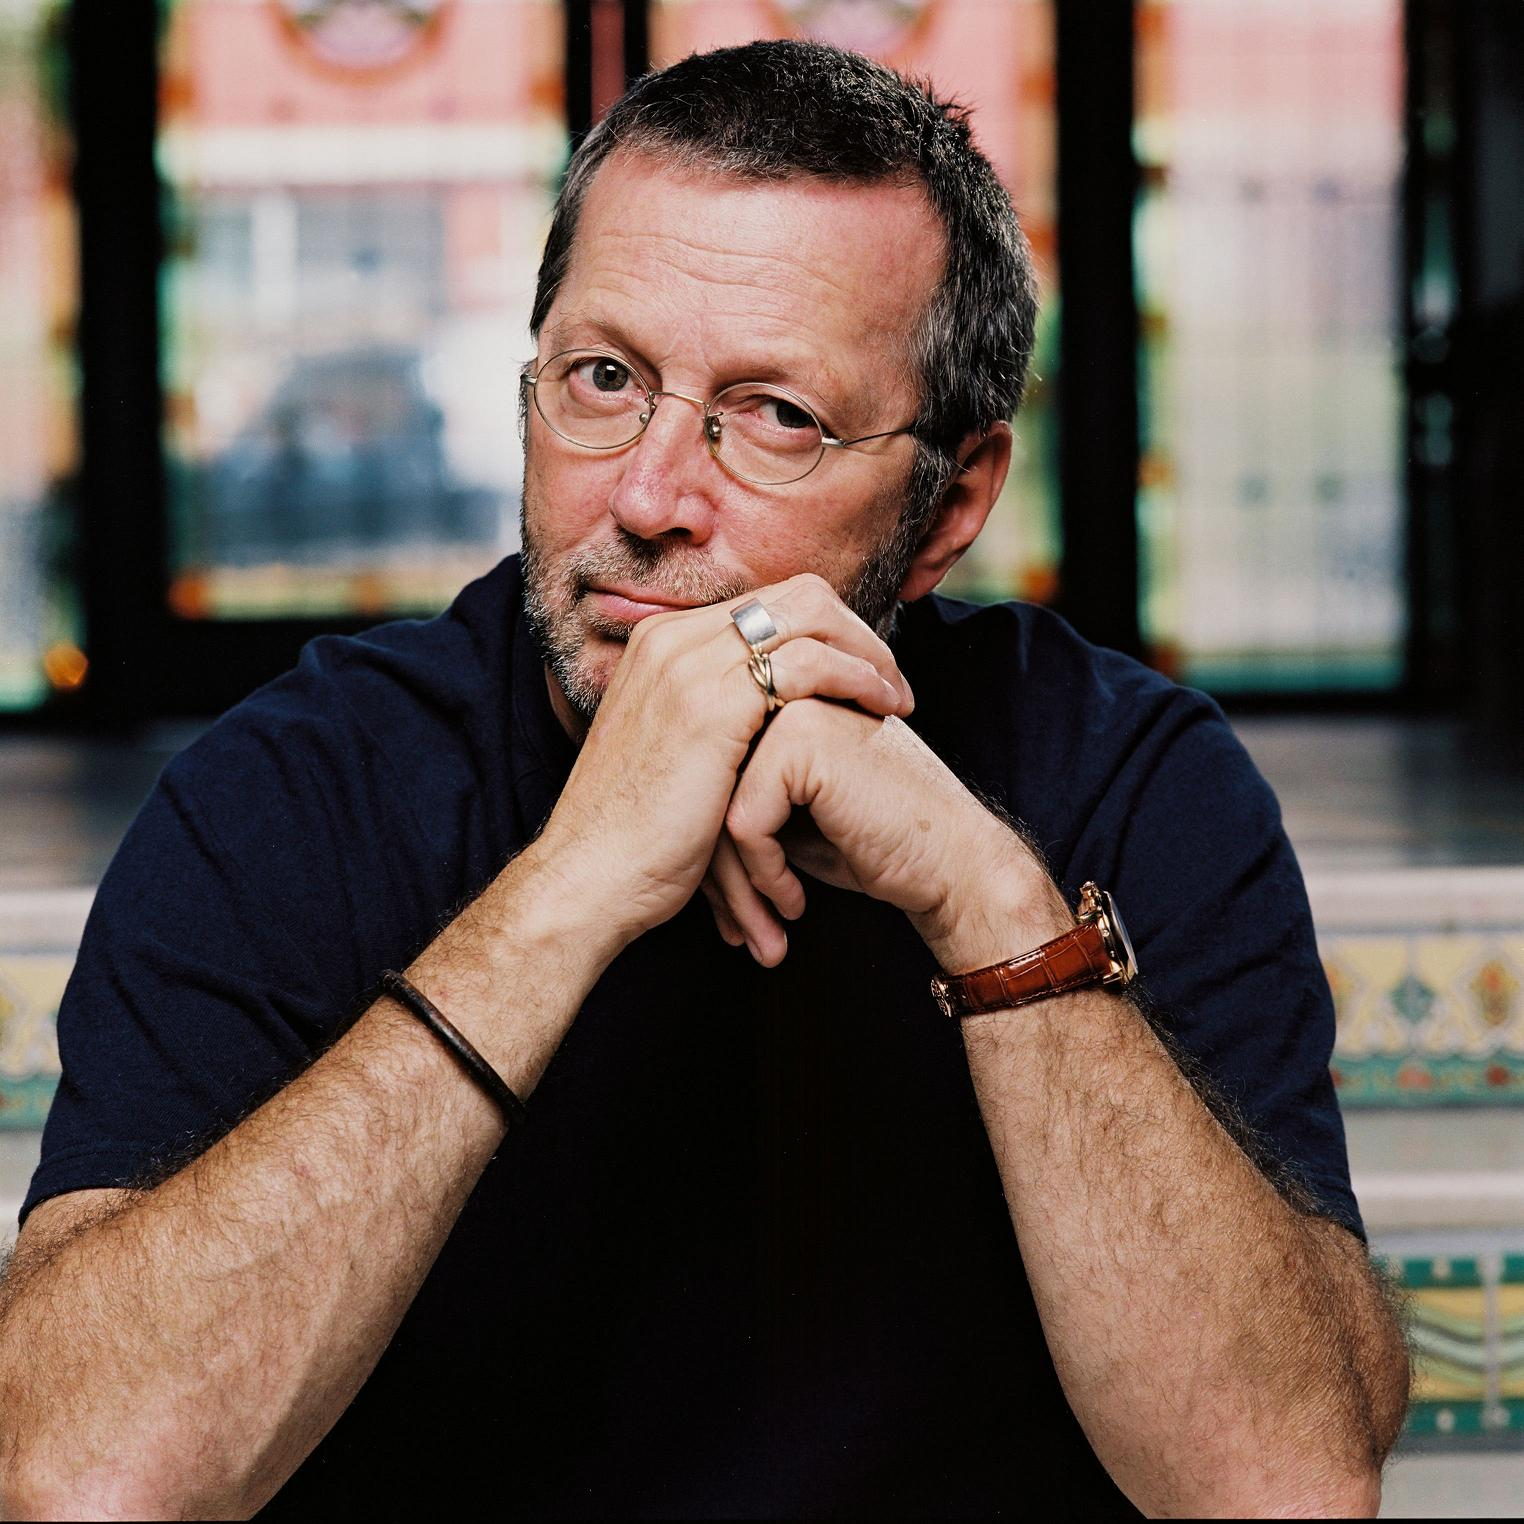 eric clapton Eric clapton: eric clapton, british rock musician who was a highly influential guitarist in the late 1960s and early 1970s and later became a major singer-songwriter.